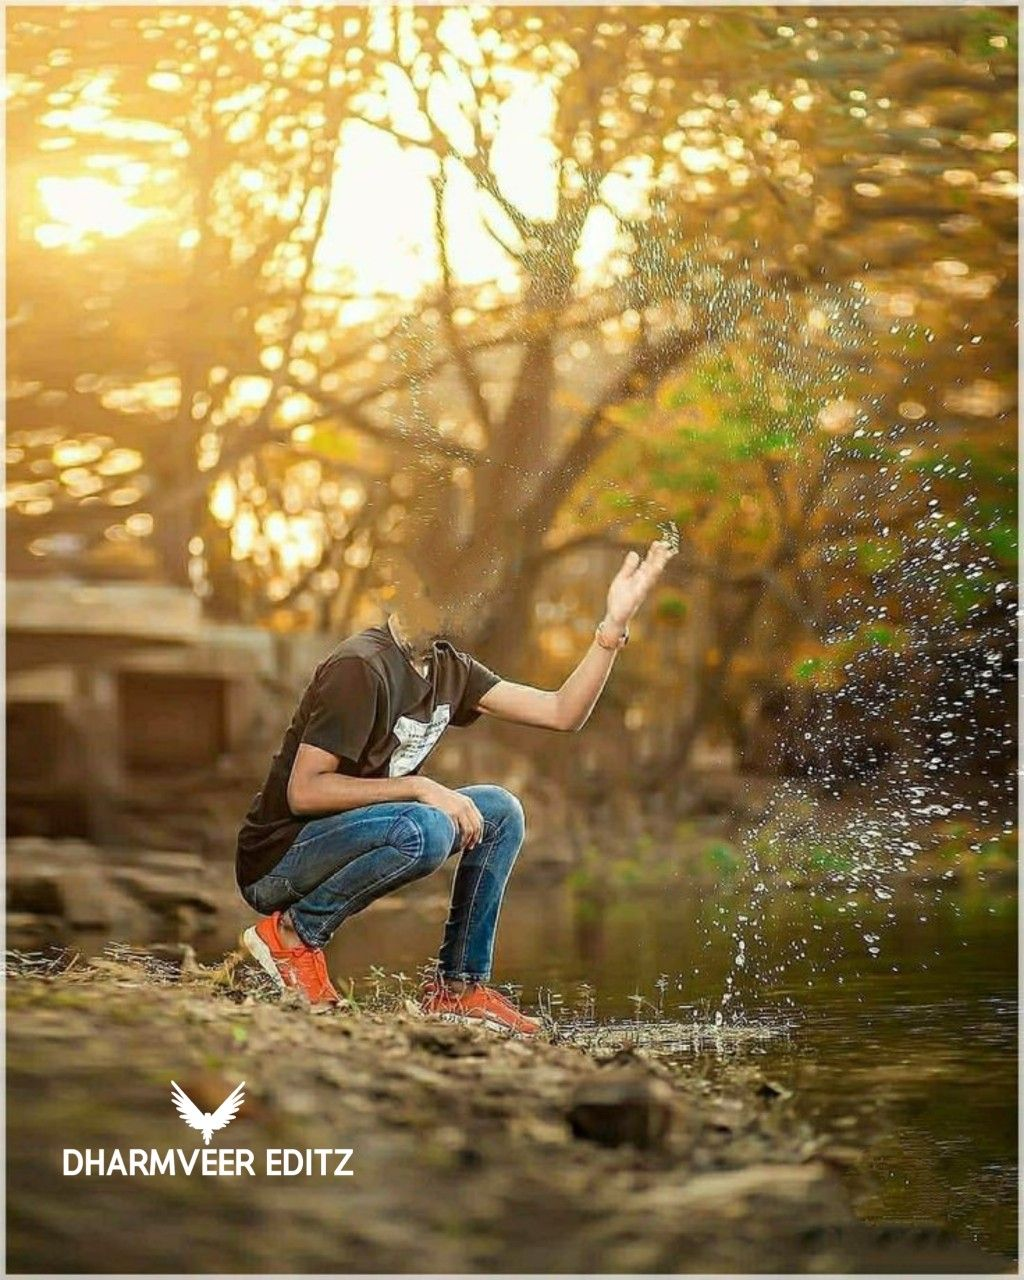 Editing Picsart Background Images Dharmveer Editz When It Comes To Image Editors For Windows It S Not All About Instagram And Photoshop See more of dharmveer editz on facebook. editing picsart background images